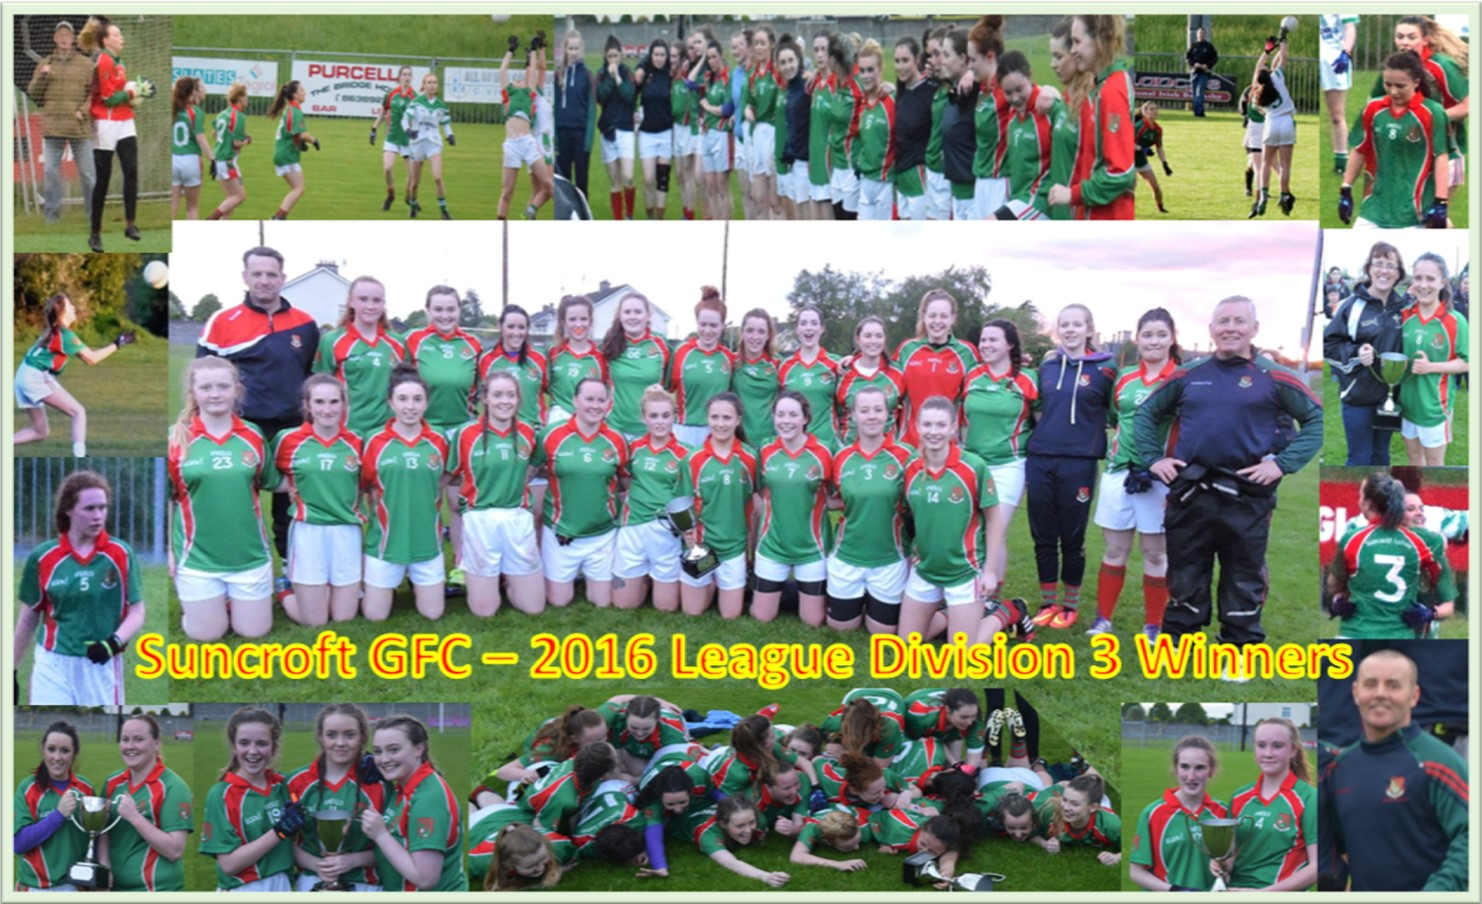 League Division 3 Winners 2016